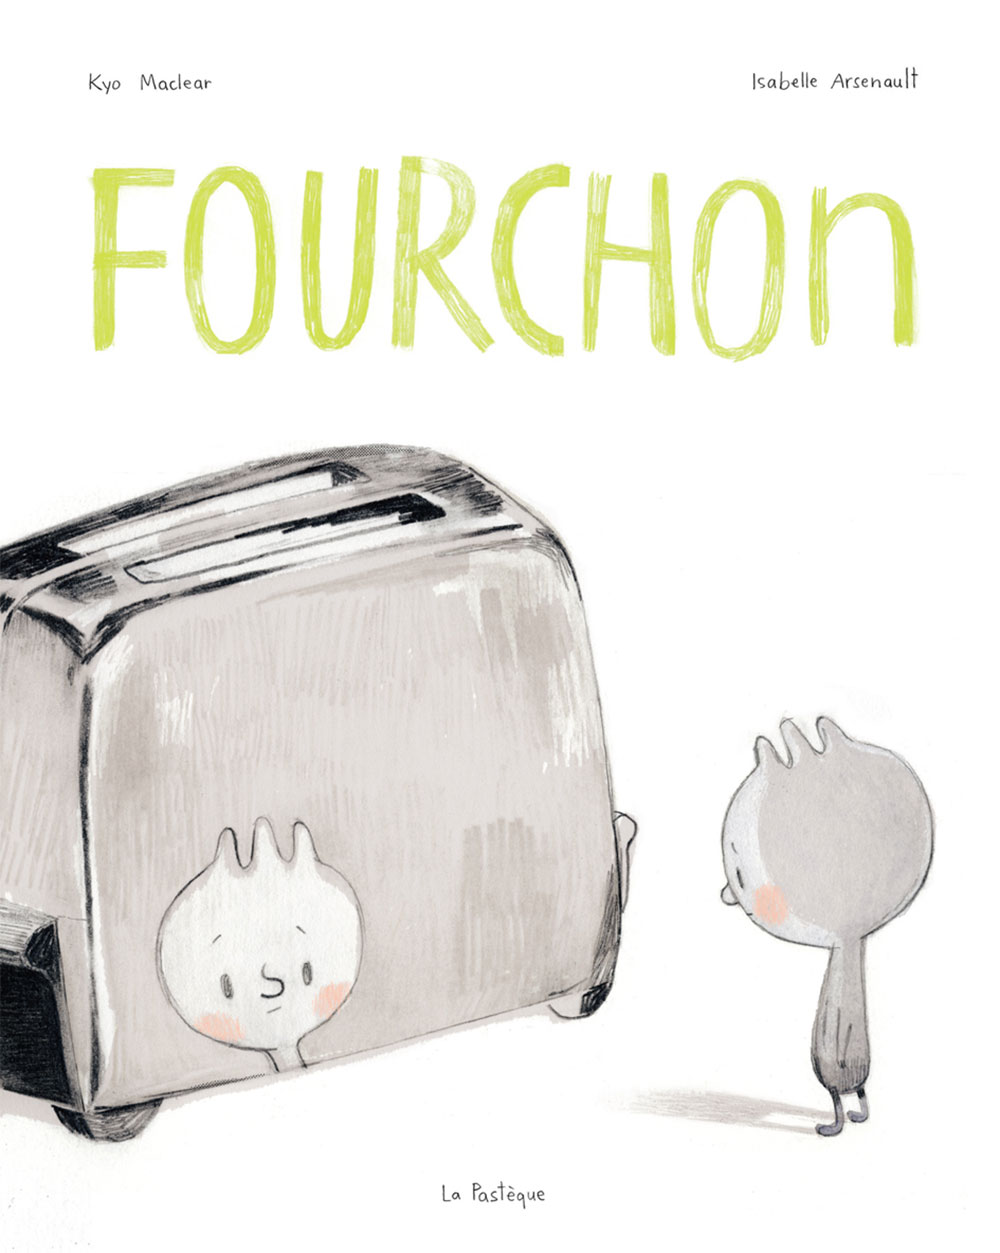 Fourchon, Kyo Maclear